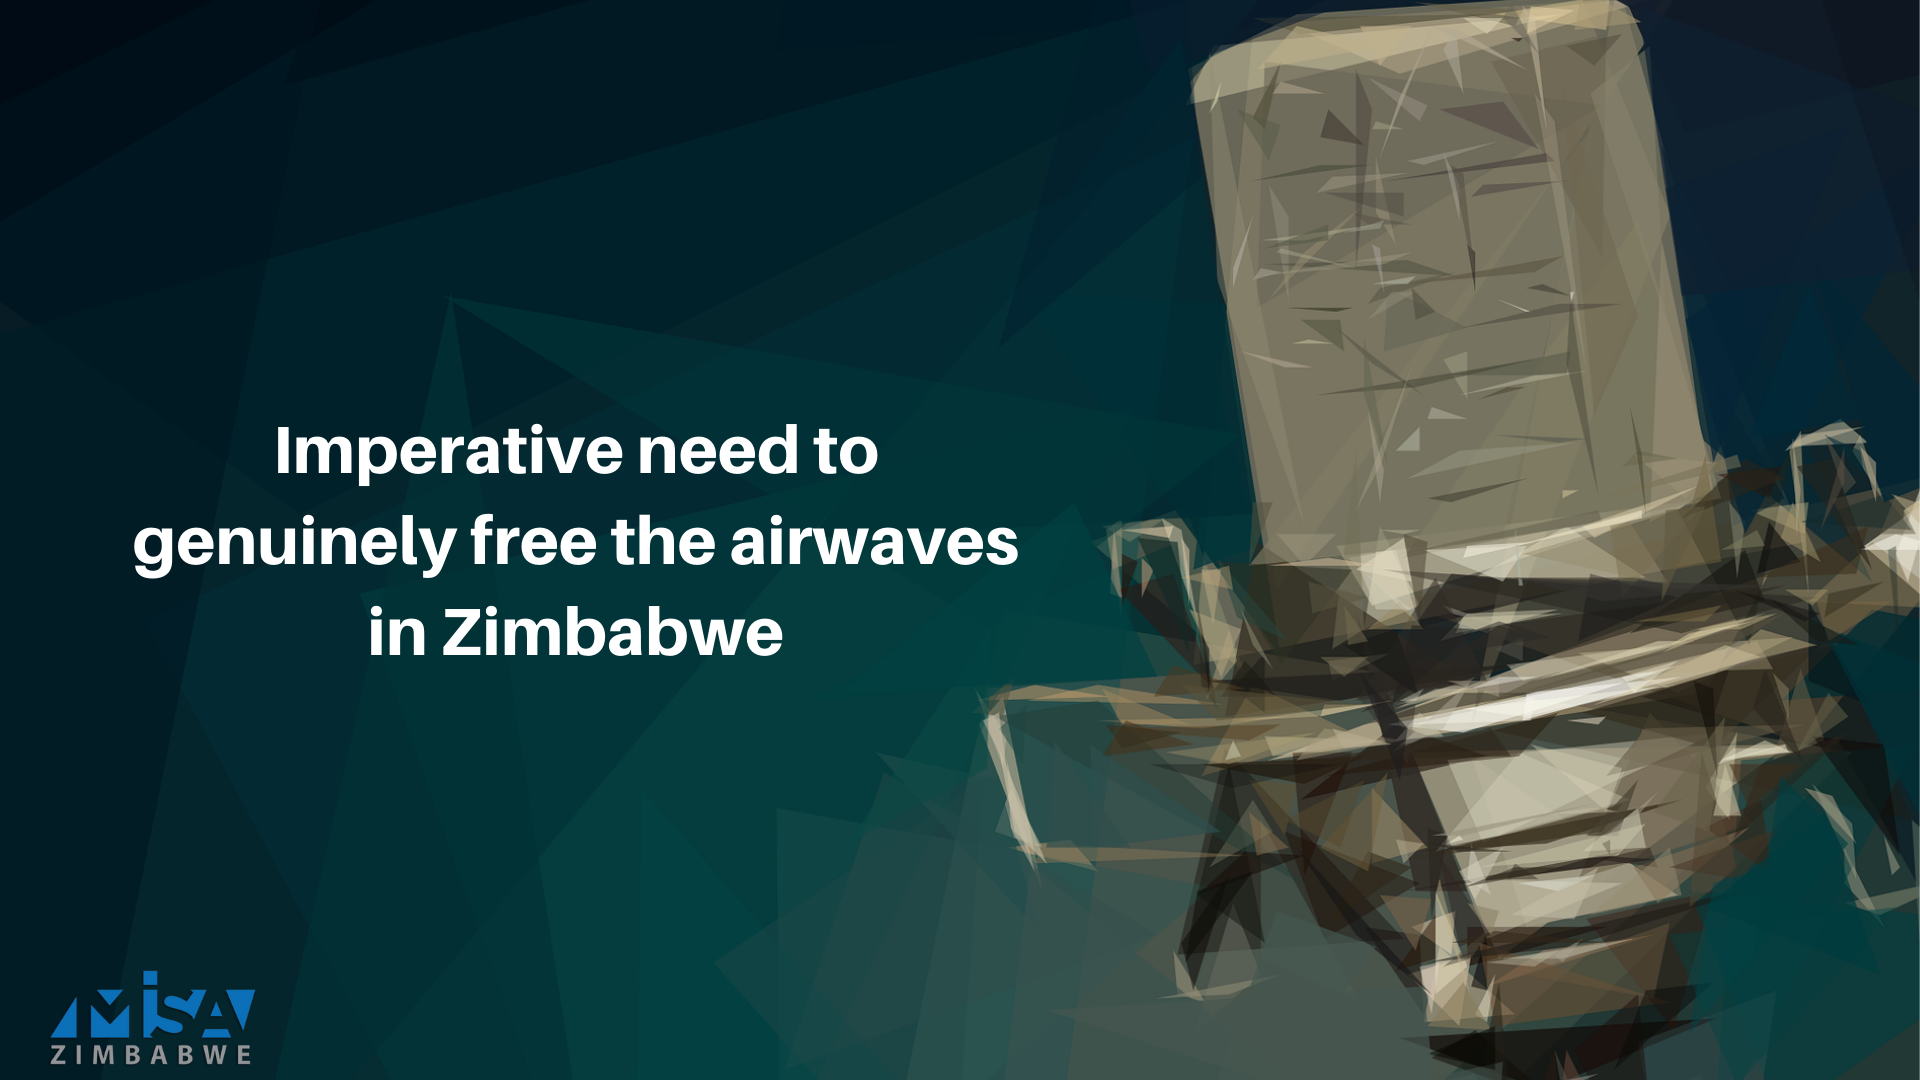 Imperative need to genuinely free the airwaves in Zimbabwe